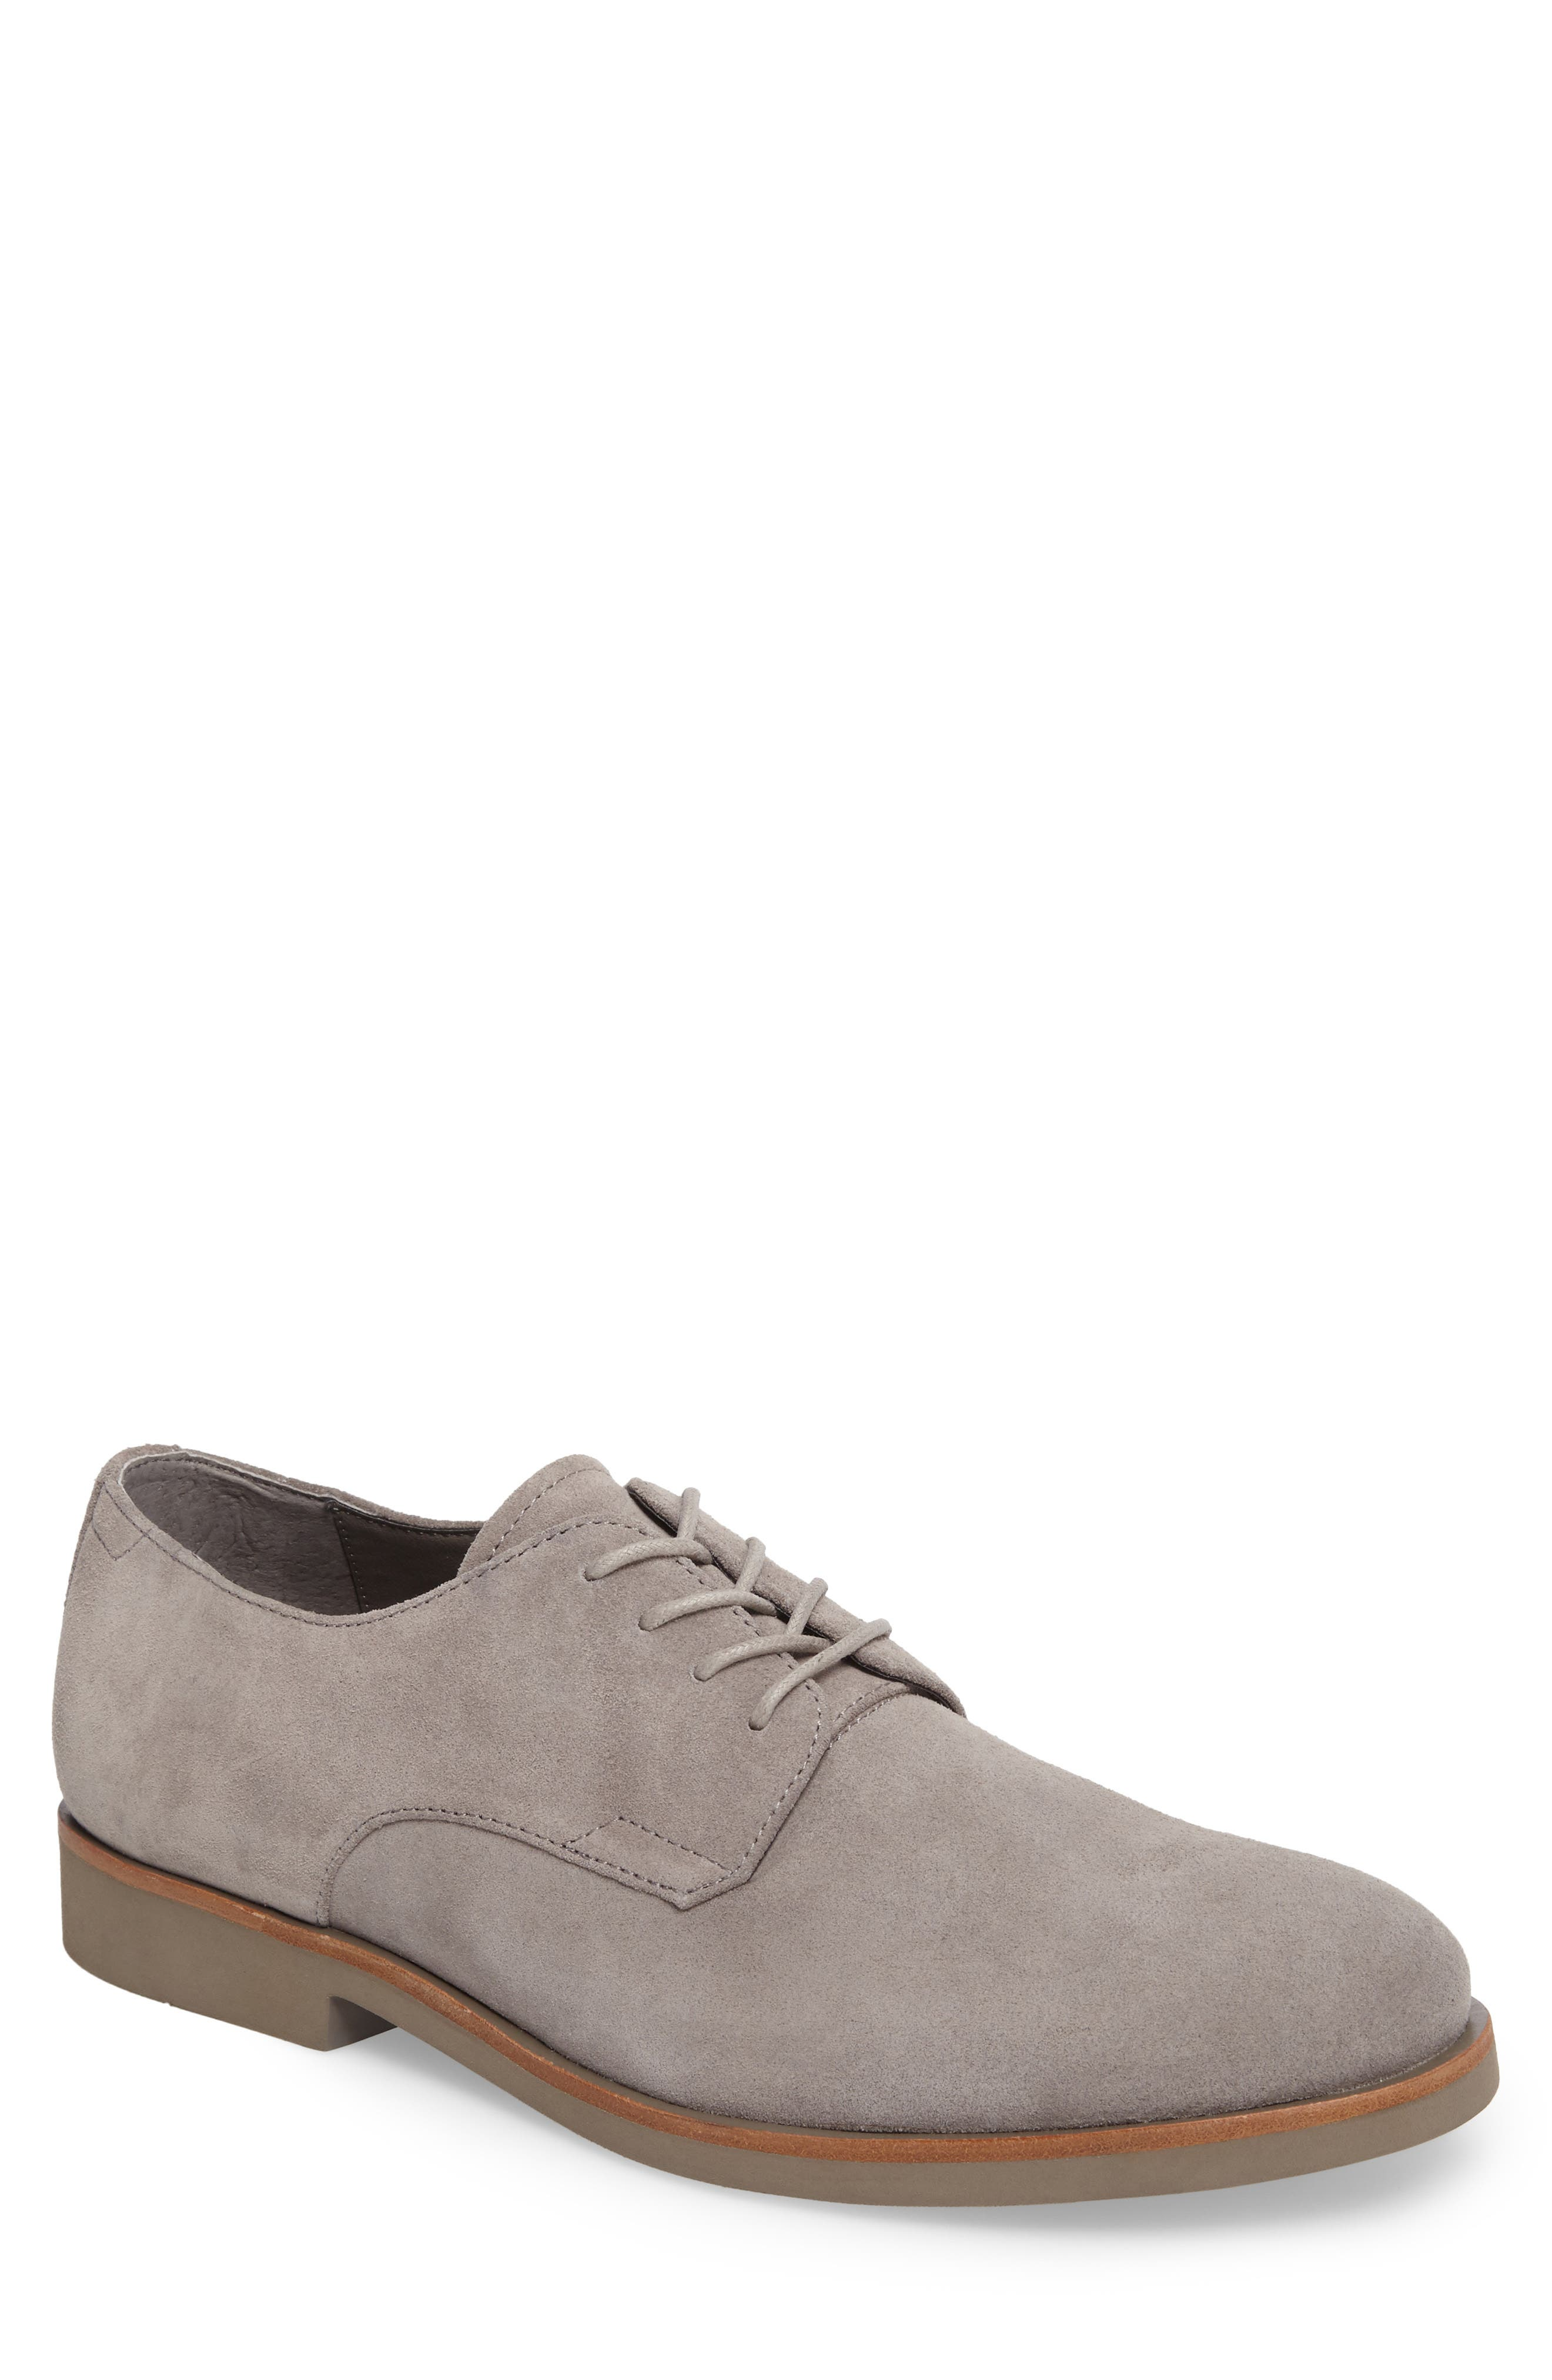 Faustino Plain Toe Derby,                             Main thumbnail 1, color,                             Toffee Suede